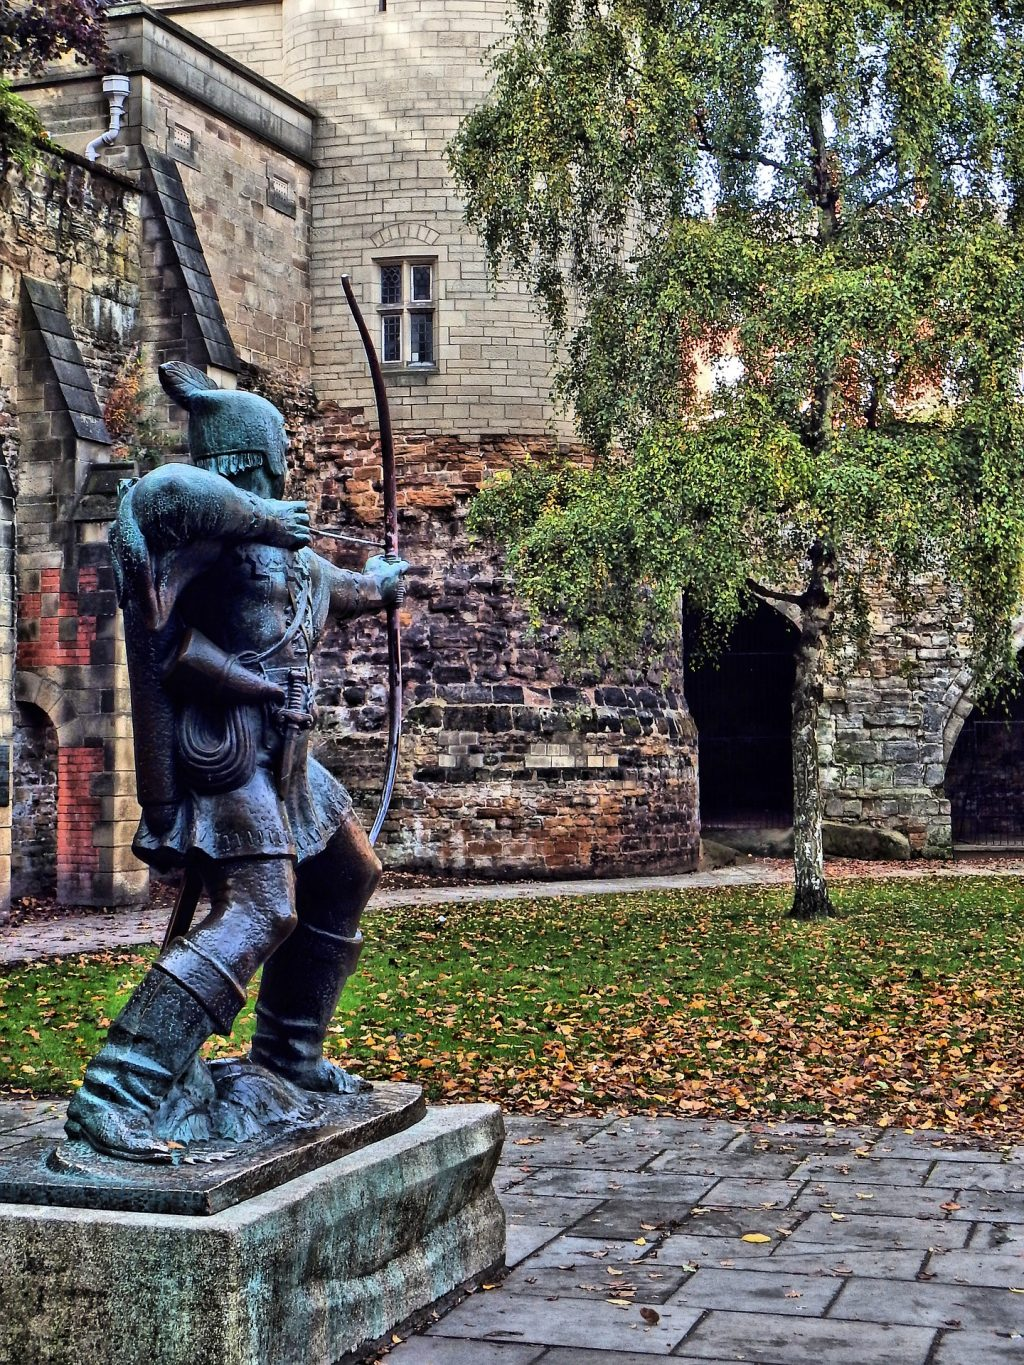 Robin Hood statue protecting the gardens of Nottingham Castle